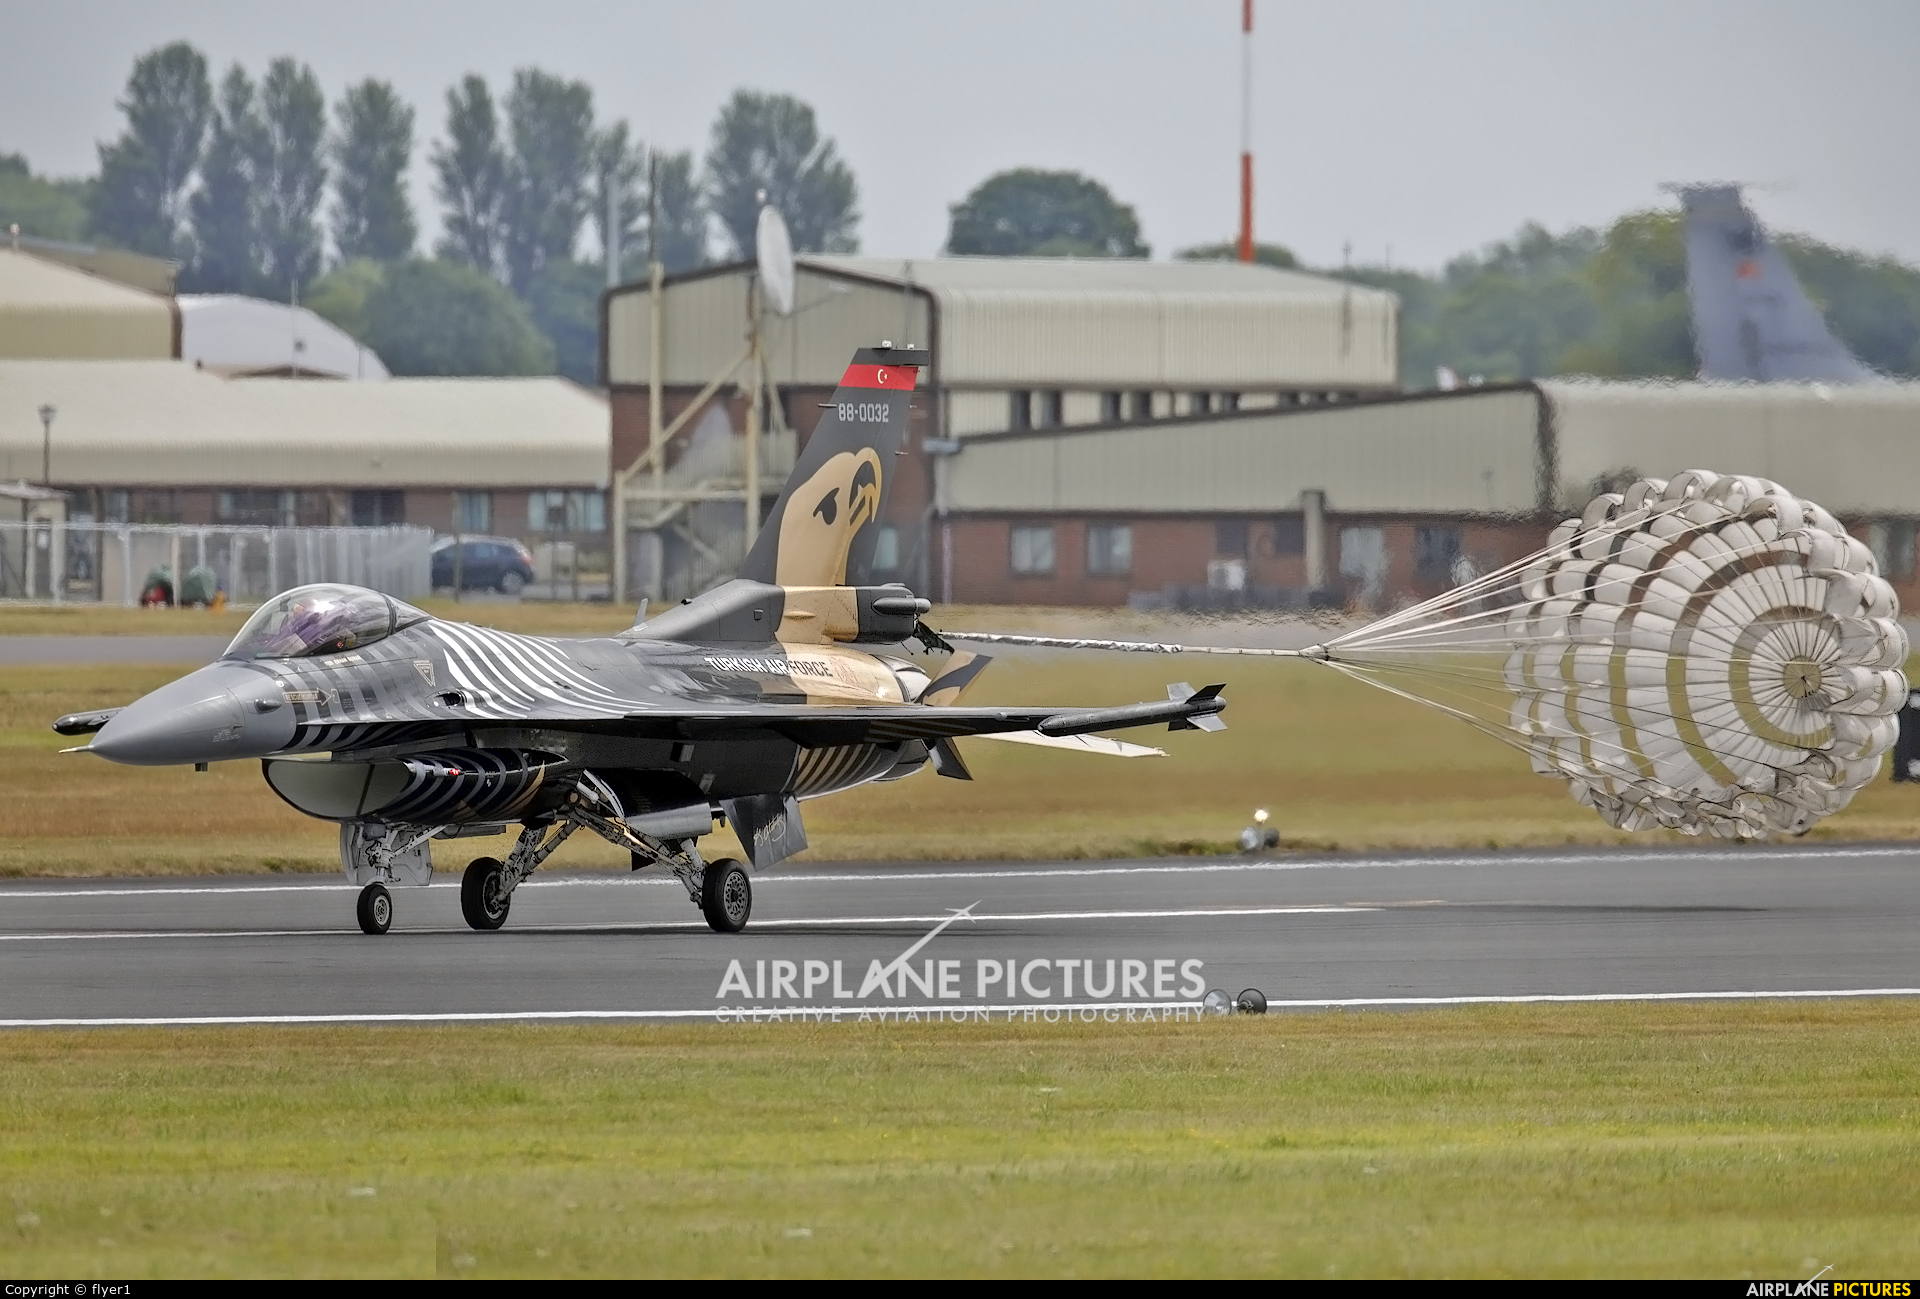 Turkey - Air Force 88-0032 aircraft at Fairford